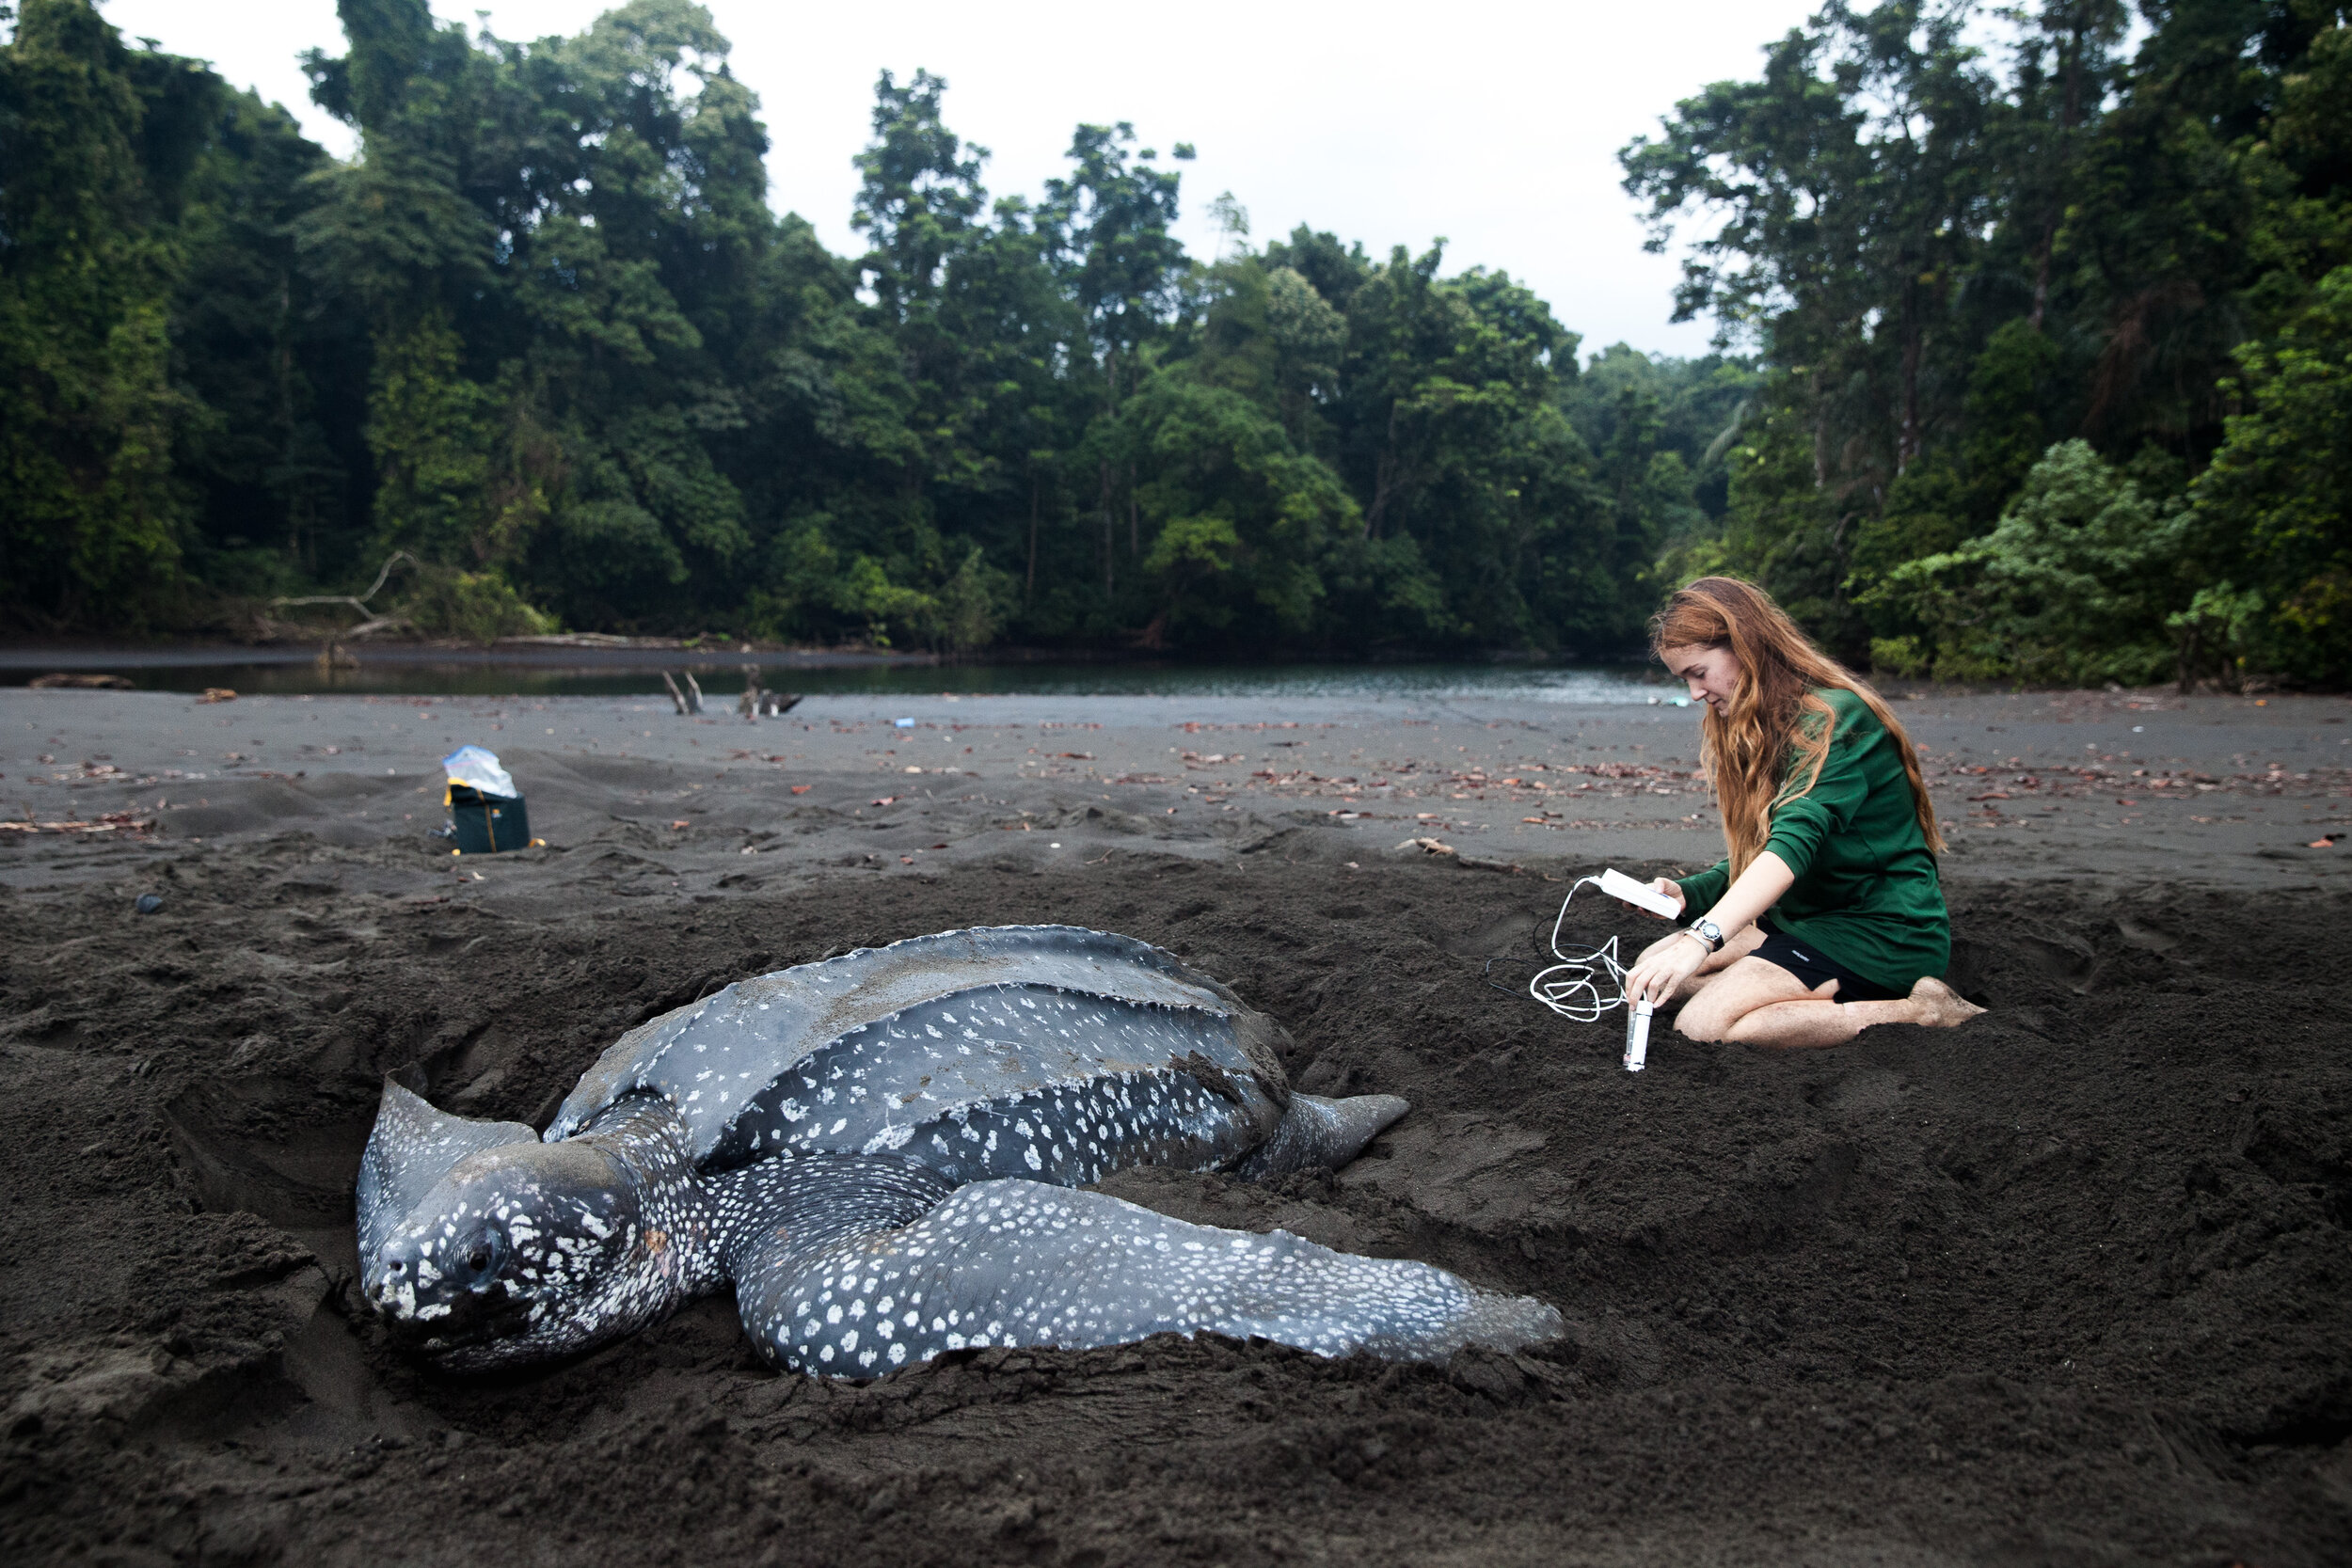 Callie Veelenturf at a leatherback turtle nest in Africa